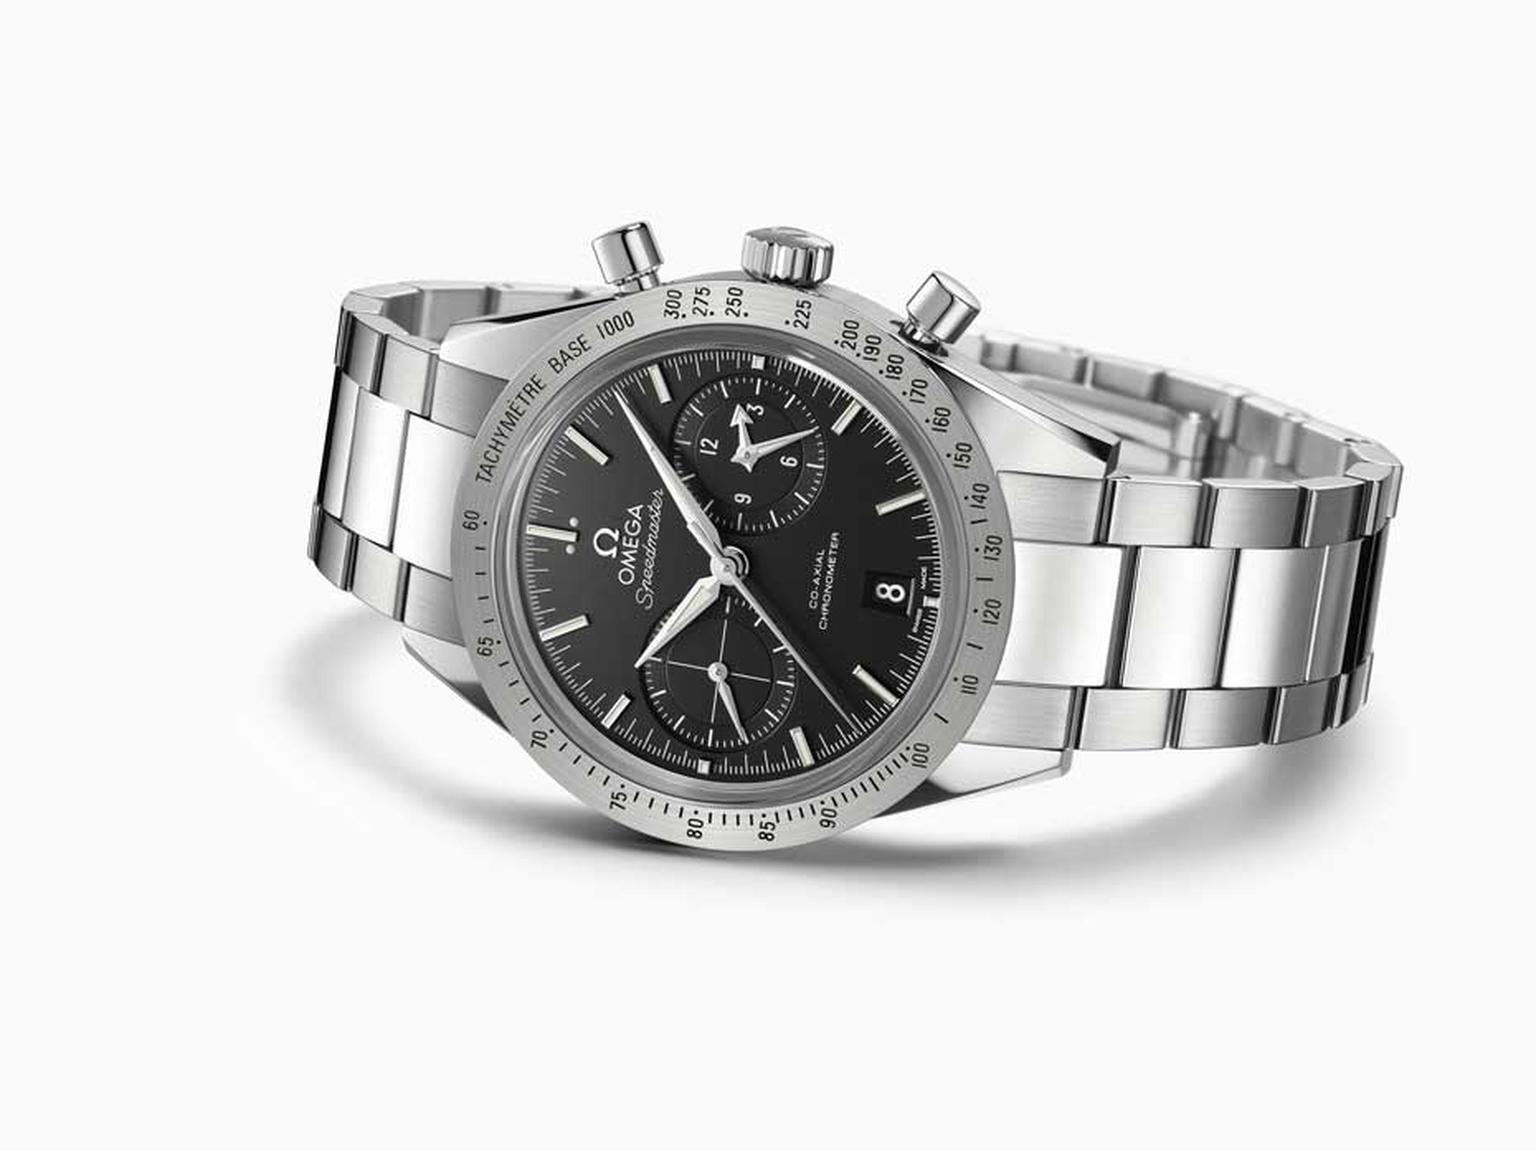 Ever since the Omega Speedmaster watch landed on the Moon with the Apollo 11 Lunar module on the Sea of Tranquillity, on the wrist of astronaut Buzz Aldrin in July 1969, it became known as the Moonwatch.